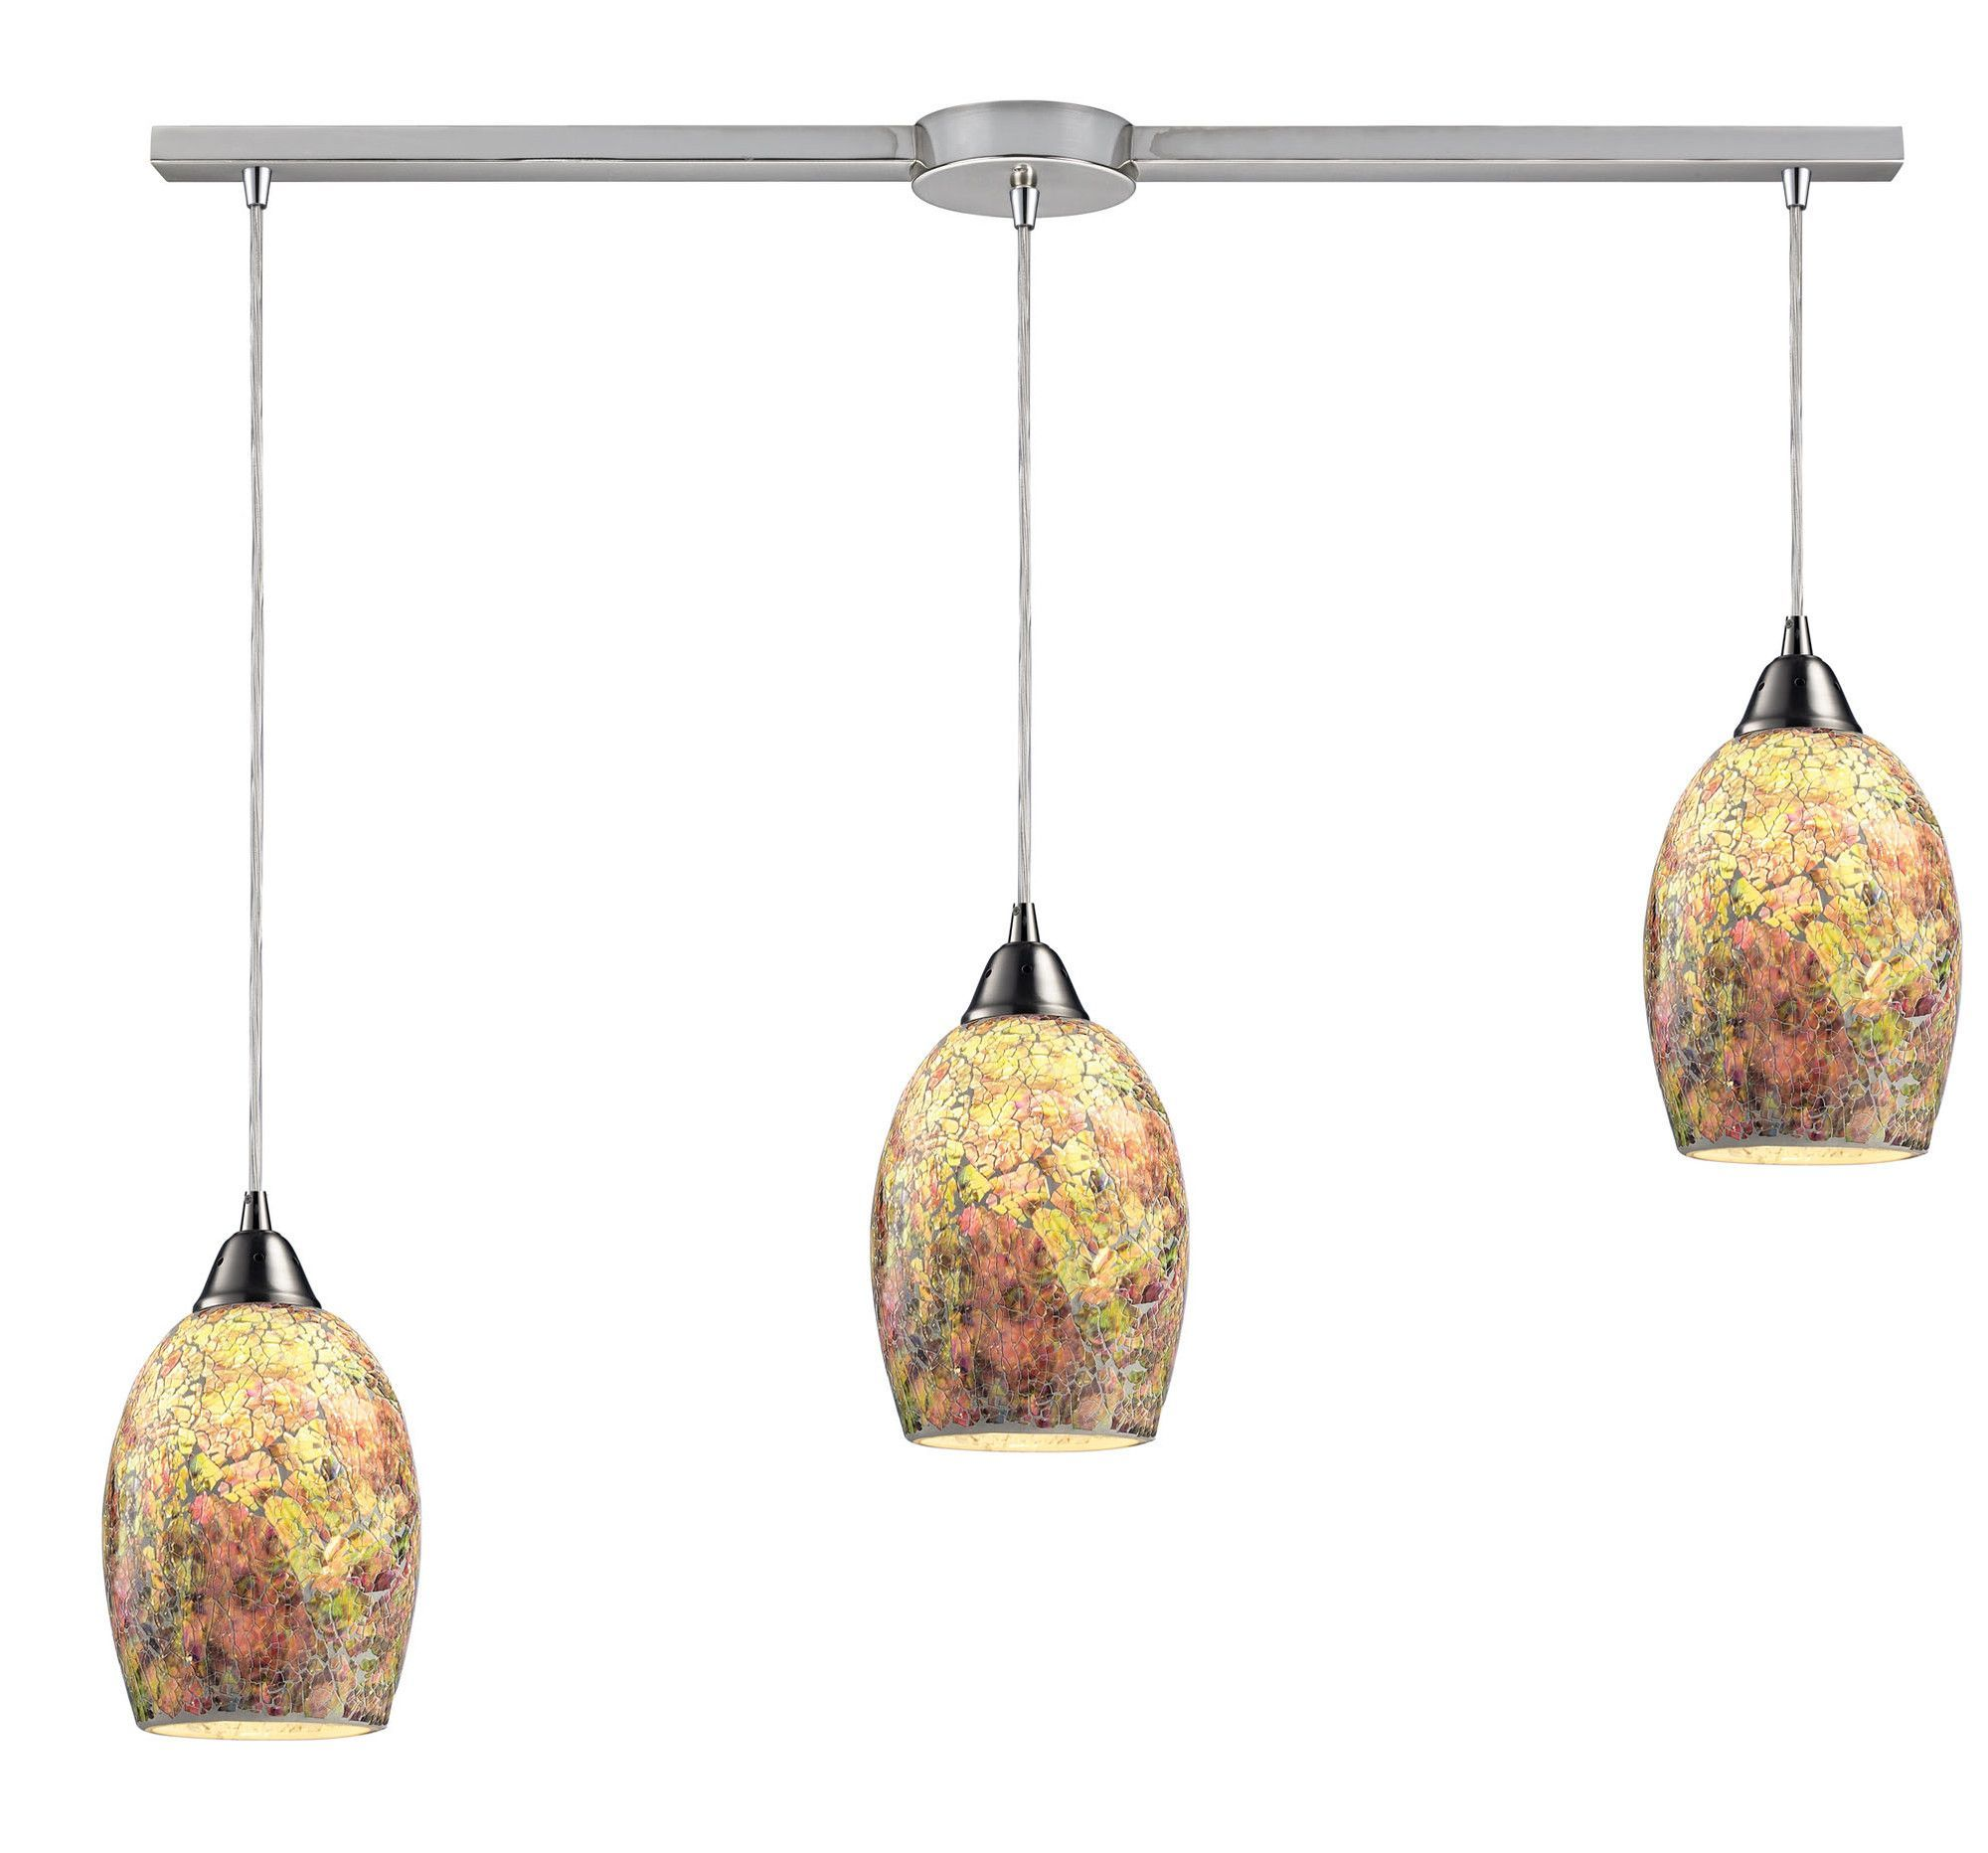 Light candlestyle chandelier pendants changue and island